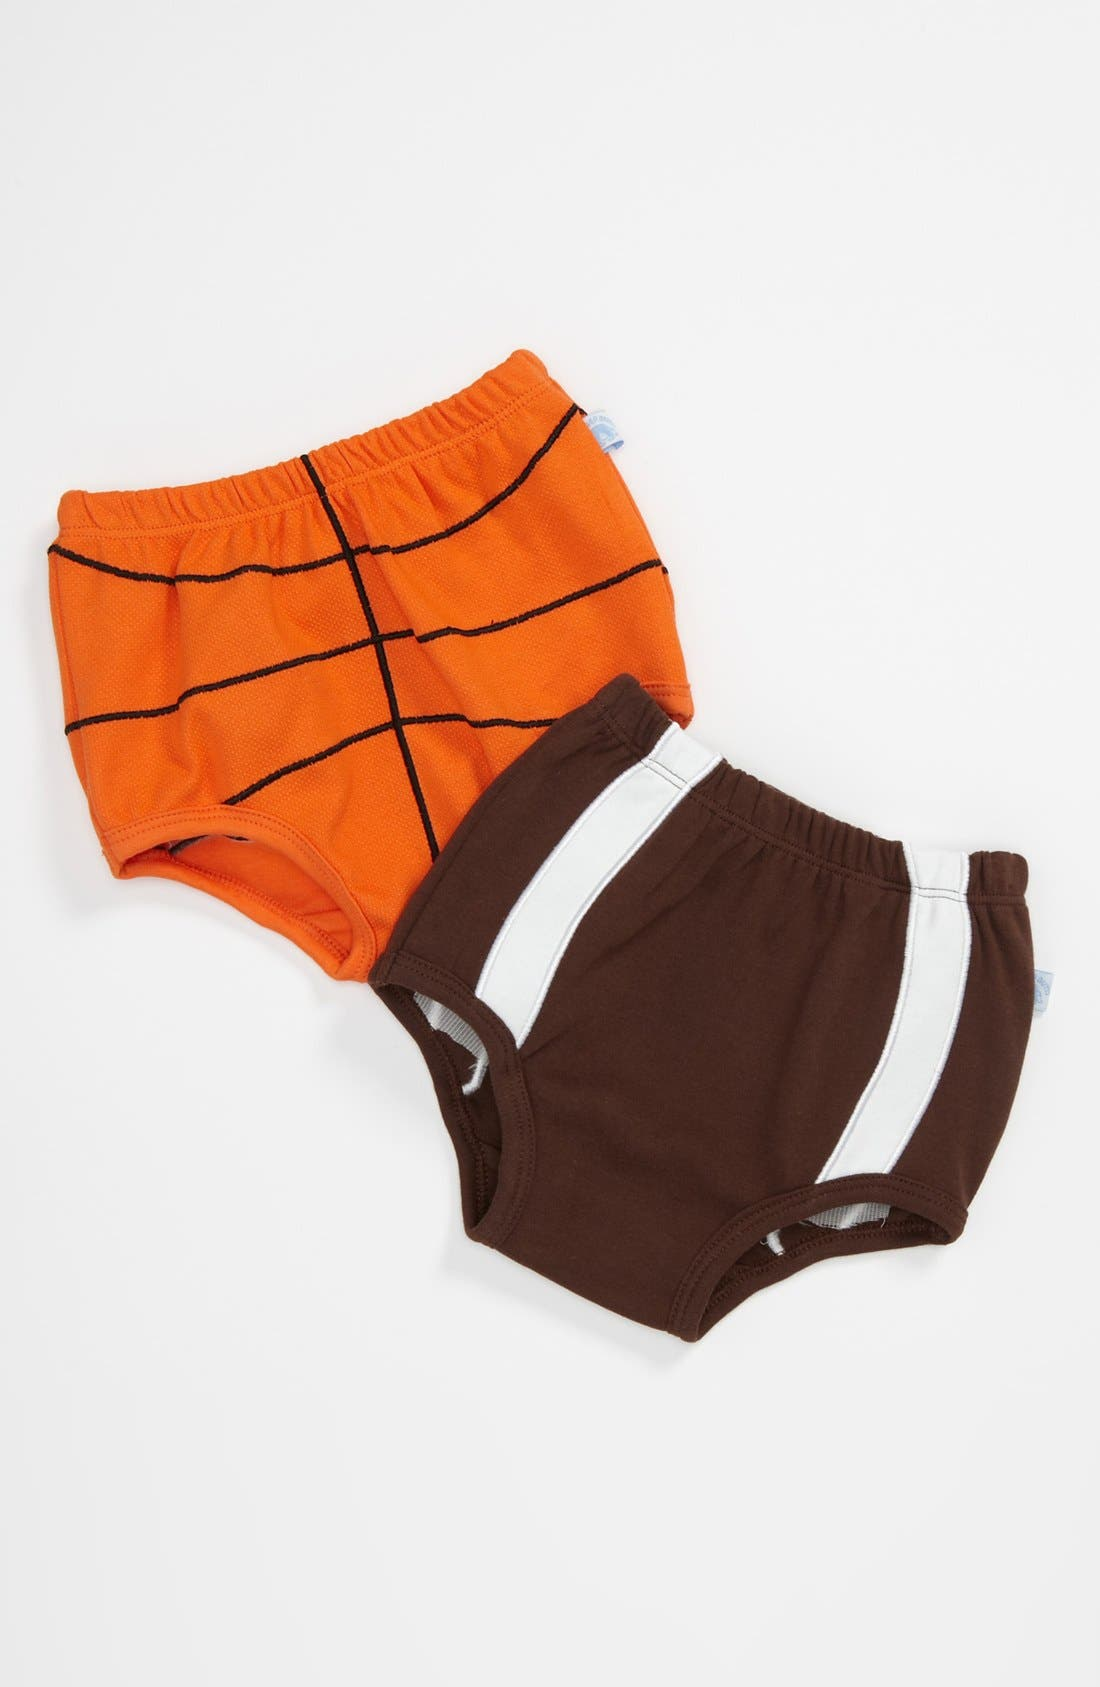 Main Image - RuggedButts 'Sports' Diaper Cover (Set of 2) (Baby)